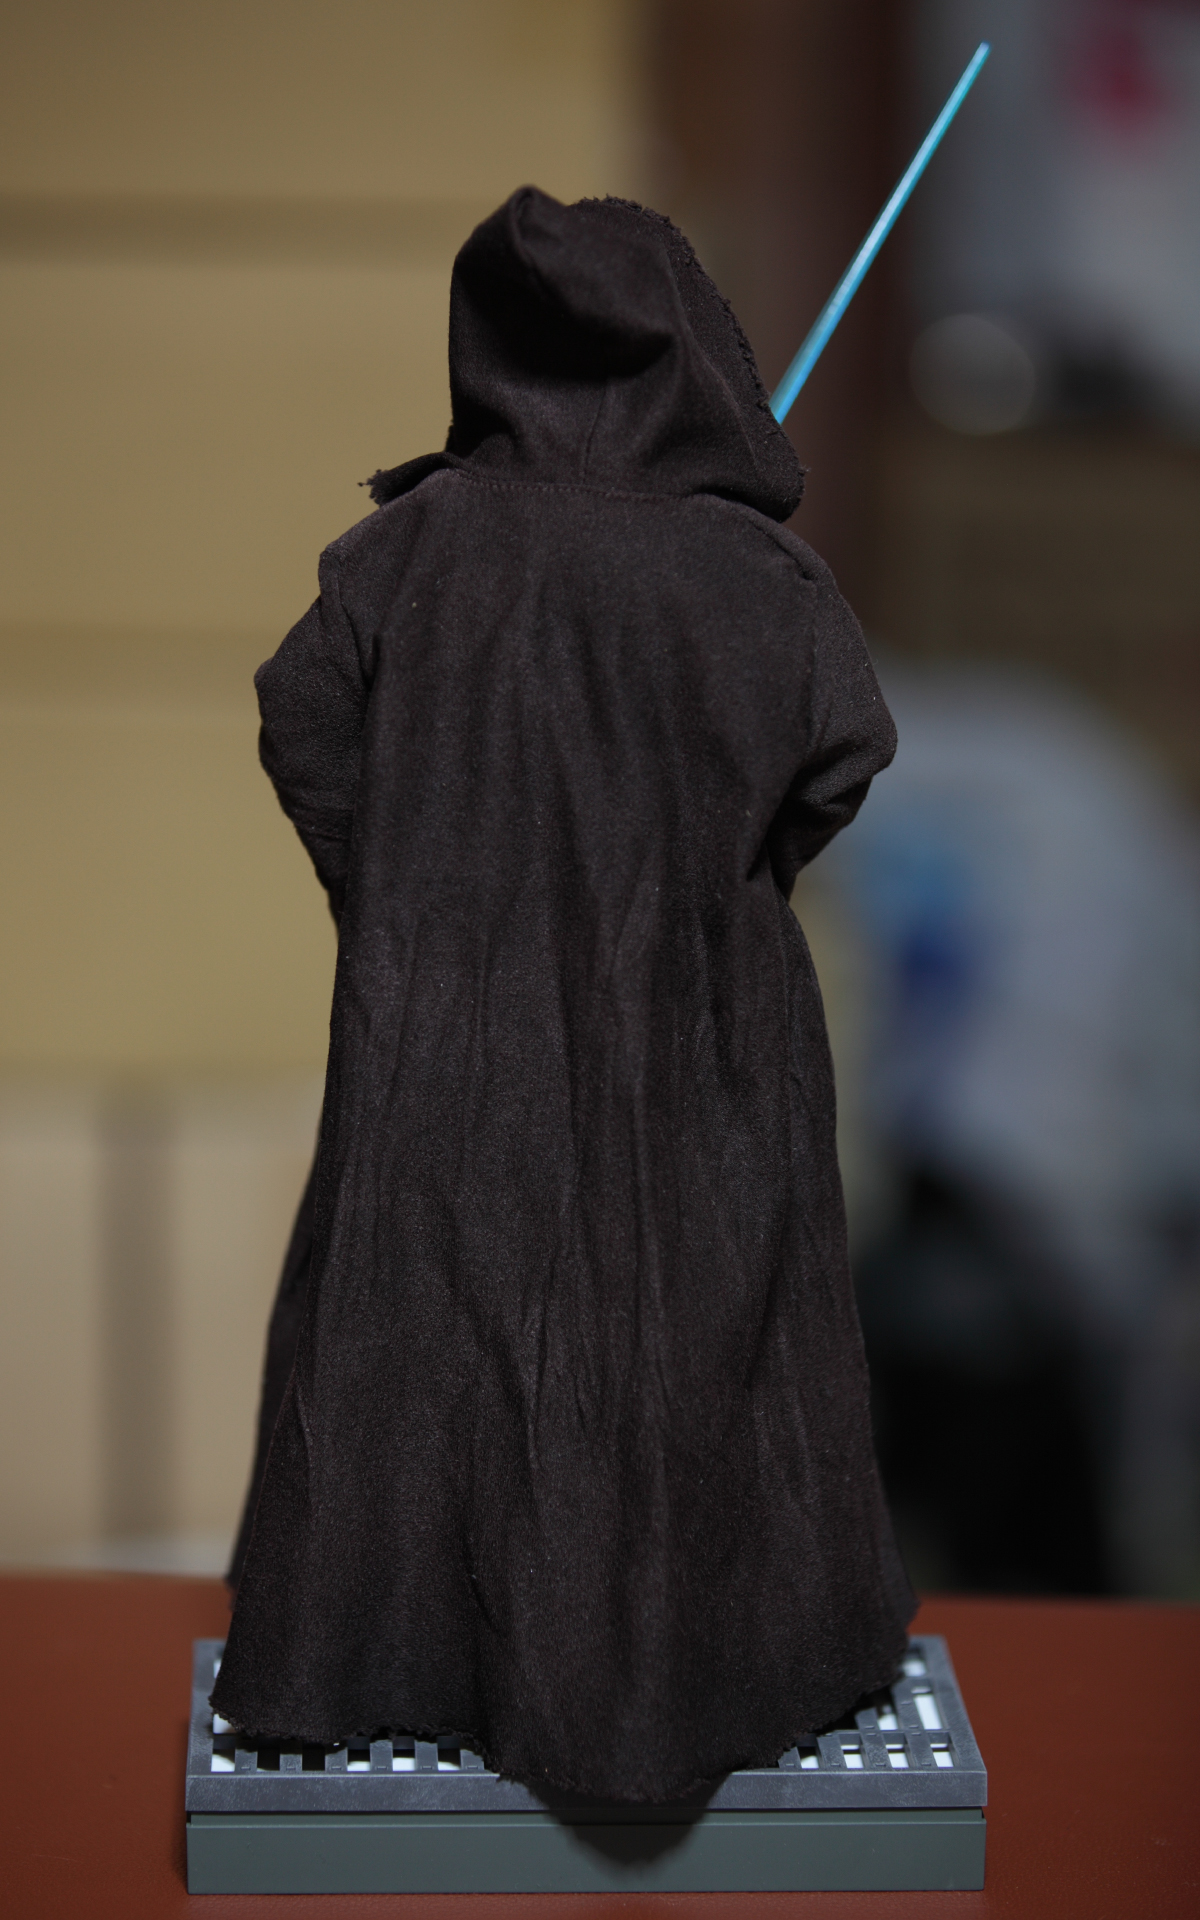 hottoys-star-wars-episode-IV-a-new-hope-obi-wan-kenobi-picture14